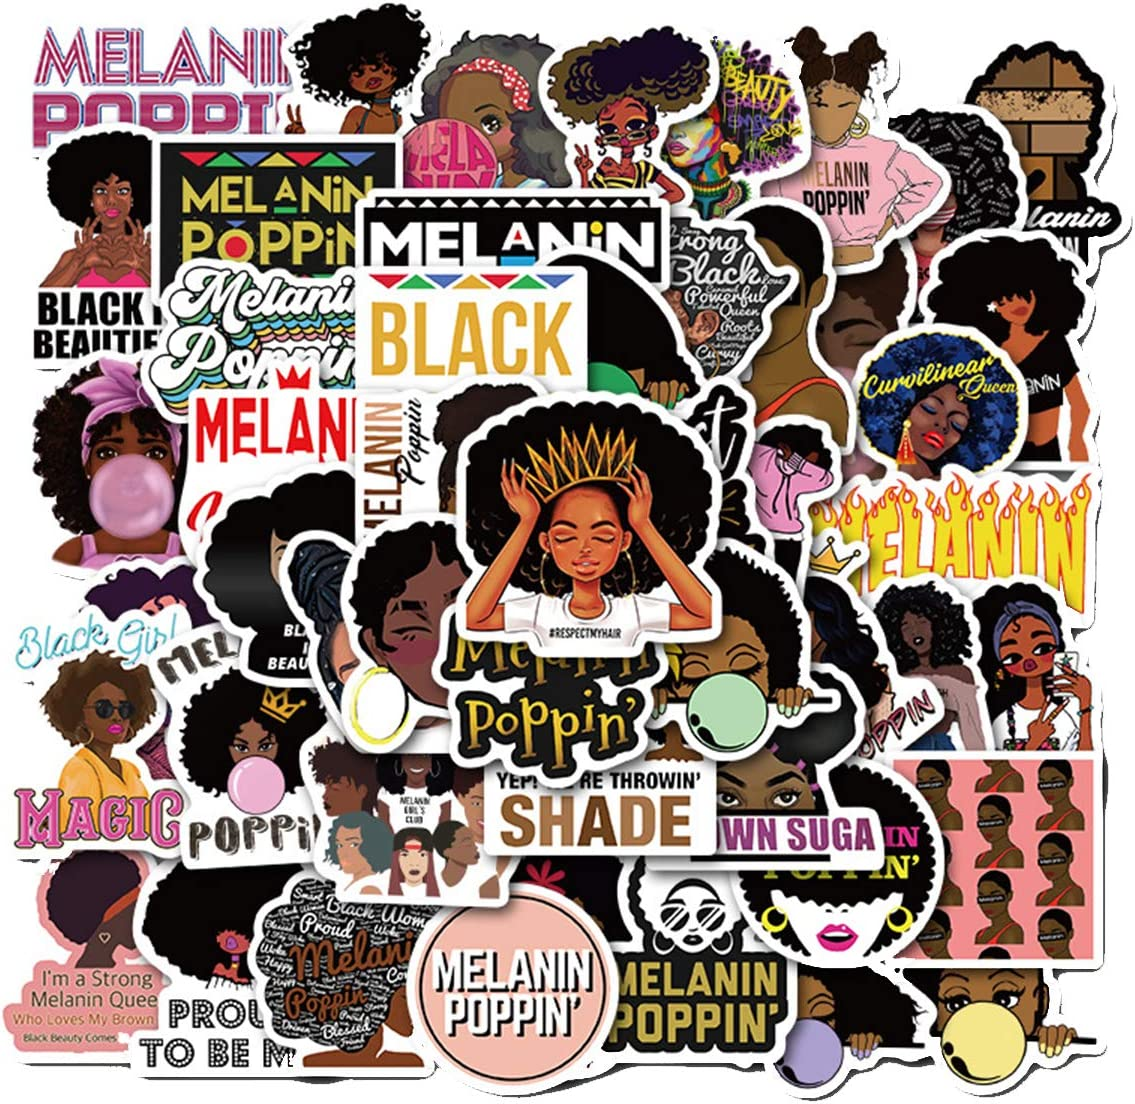 Singer Melanin Poppin Stickers 50PCS for Laptop and Water Bottles,Waterproof Durable Trendy Vinyl Laptop Decal Stickers Pack for Teens, Water Bottles, Computer, Travel Case (Melanin Poppin)